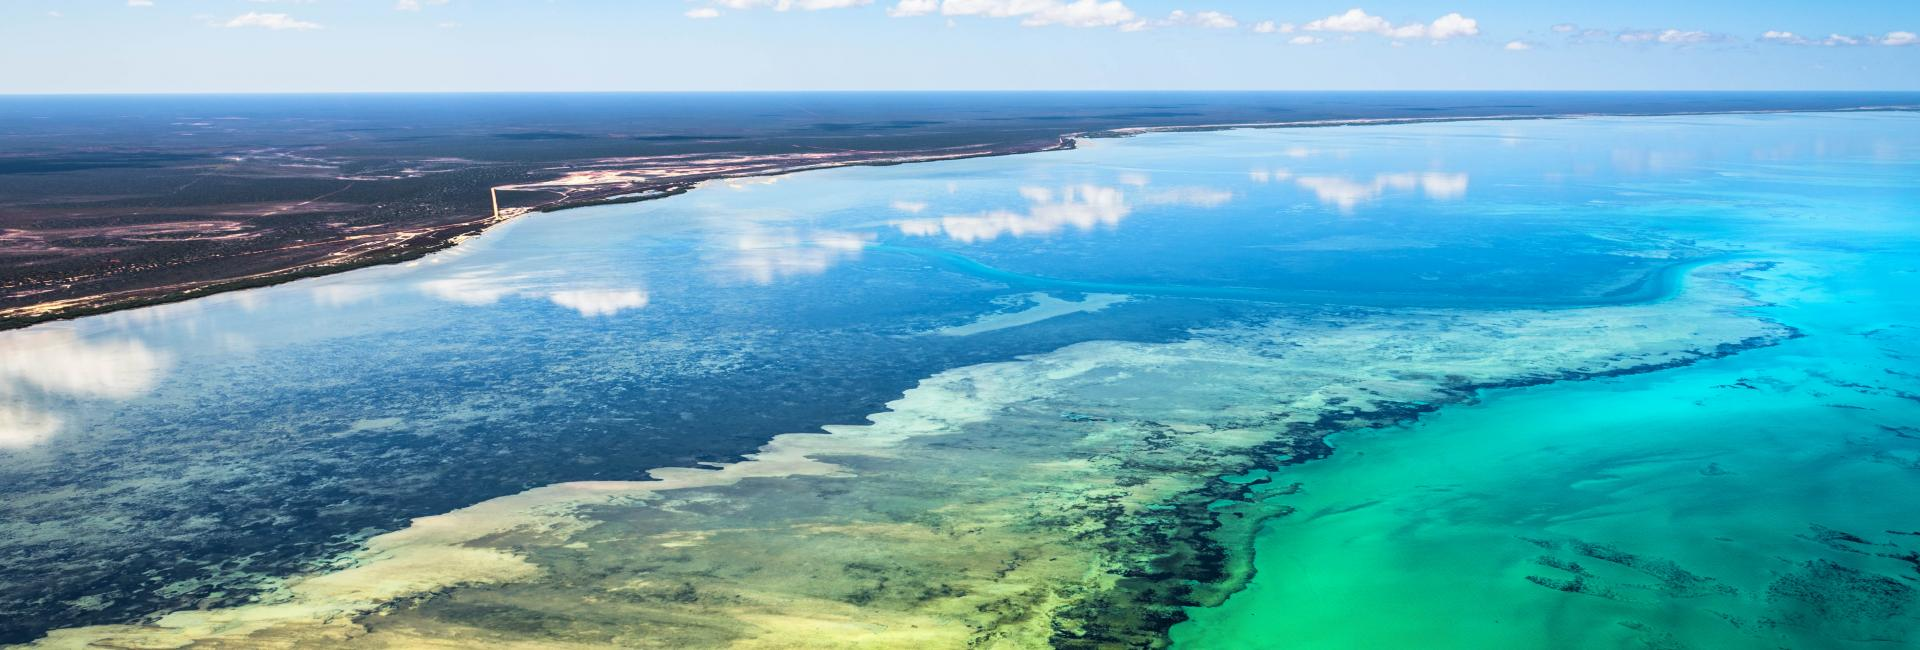 An aerial view over Shark Bay and seagrass from Coral Coast Helicopter Services, Western Australia